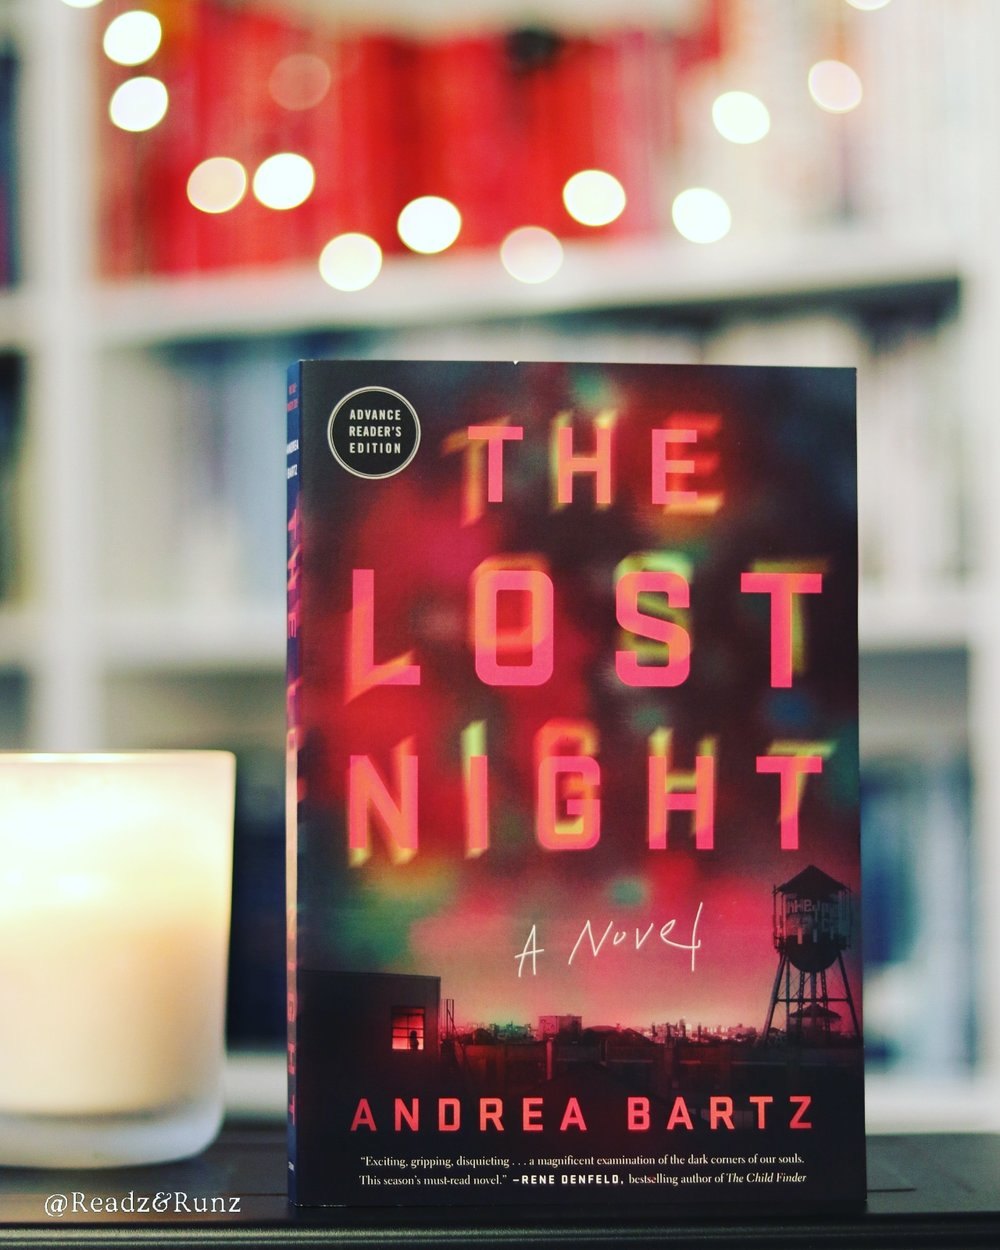 The Lost Night - What really happened the night Edie died? Ten years later, her best friend Lindsay will learn how unprepared she is for the truth.In 2009, Edie had New York's social world in her thrall. Mercurial and beguiling, she was the shining star of a group of recent graduates living in a Brooklyn loft and treating the city like their playground. When Edie's body was found near a suicide note at the end of a long, drunken night, no one could believe it. Grief, shock, and resentment scattered the group and brought the era to an abrupt end.A decade later, Lindsay has come a long way from the drug-addled world of Calhoun Lofts. She has devoted best friends, a cozy apartment, and a thriving career as a magazine's head fact-checker. But when a chance reunion leads Lindsay to discover an unsettling video from that hazy night, she starts to wonder if Edie was actually murdered—and, worse, if she herself was involved. As she rifles through those months in 2009—combing through case files, old technology, and her fractured memories—Lindsay is forced to confront the demons of her own violent history to bring the truth to light